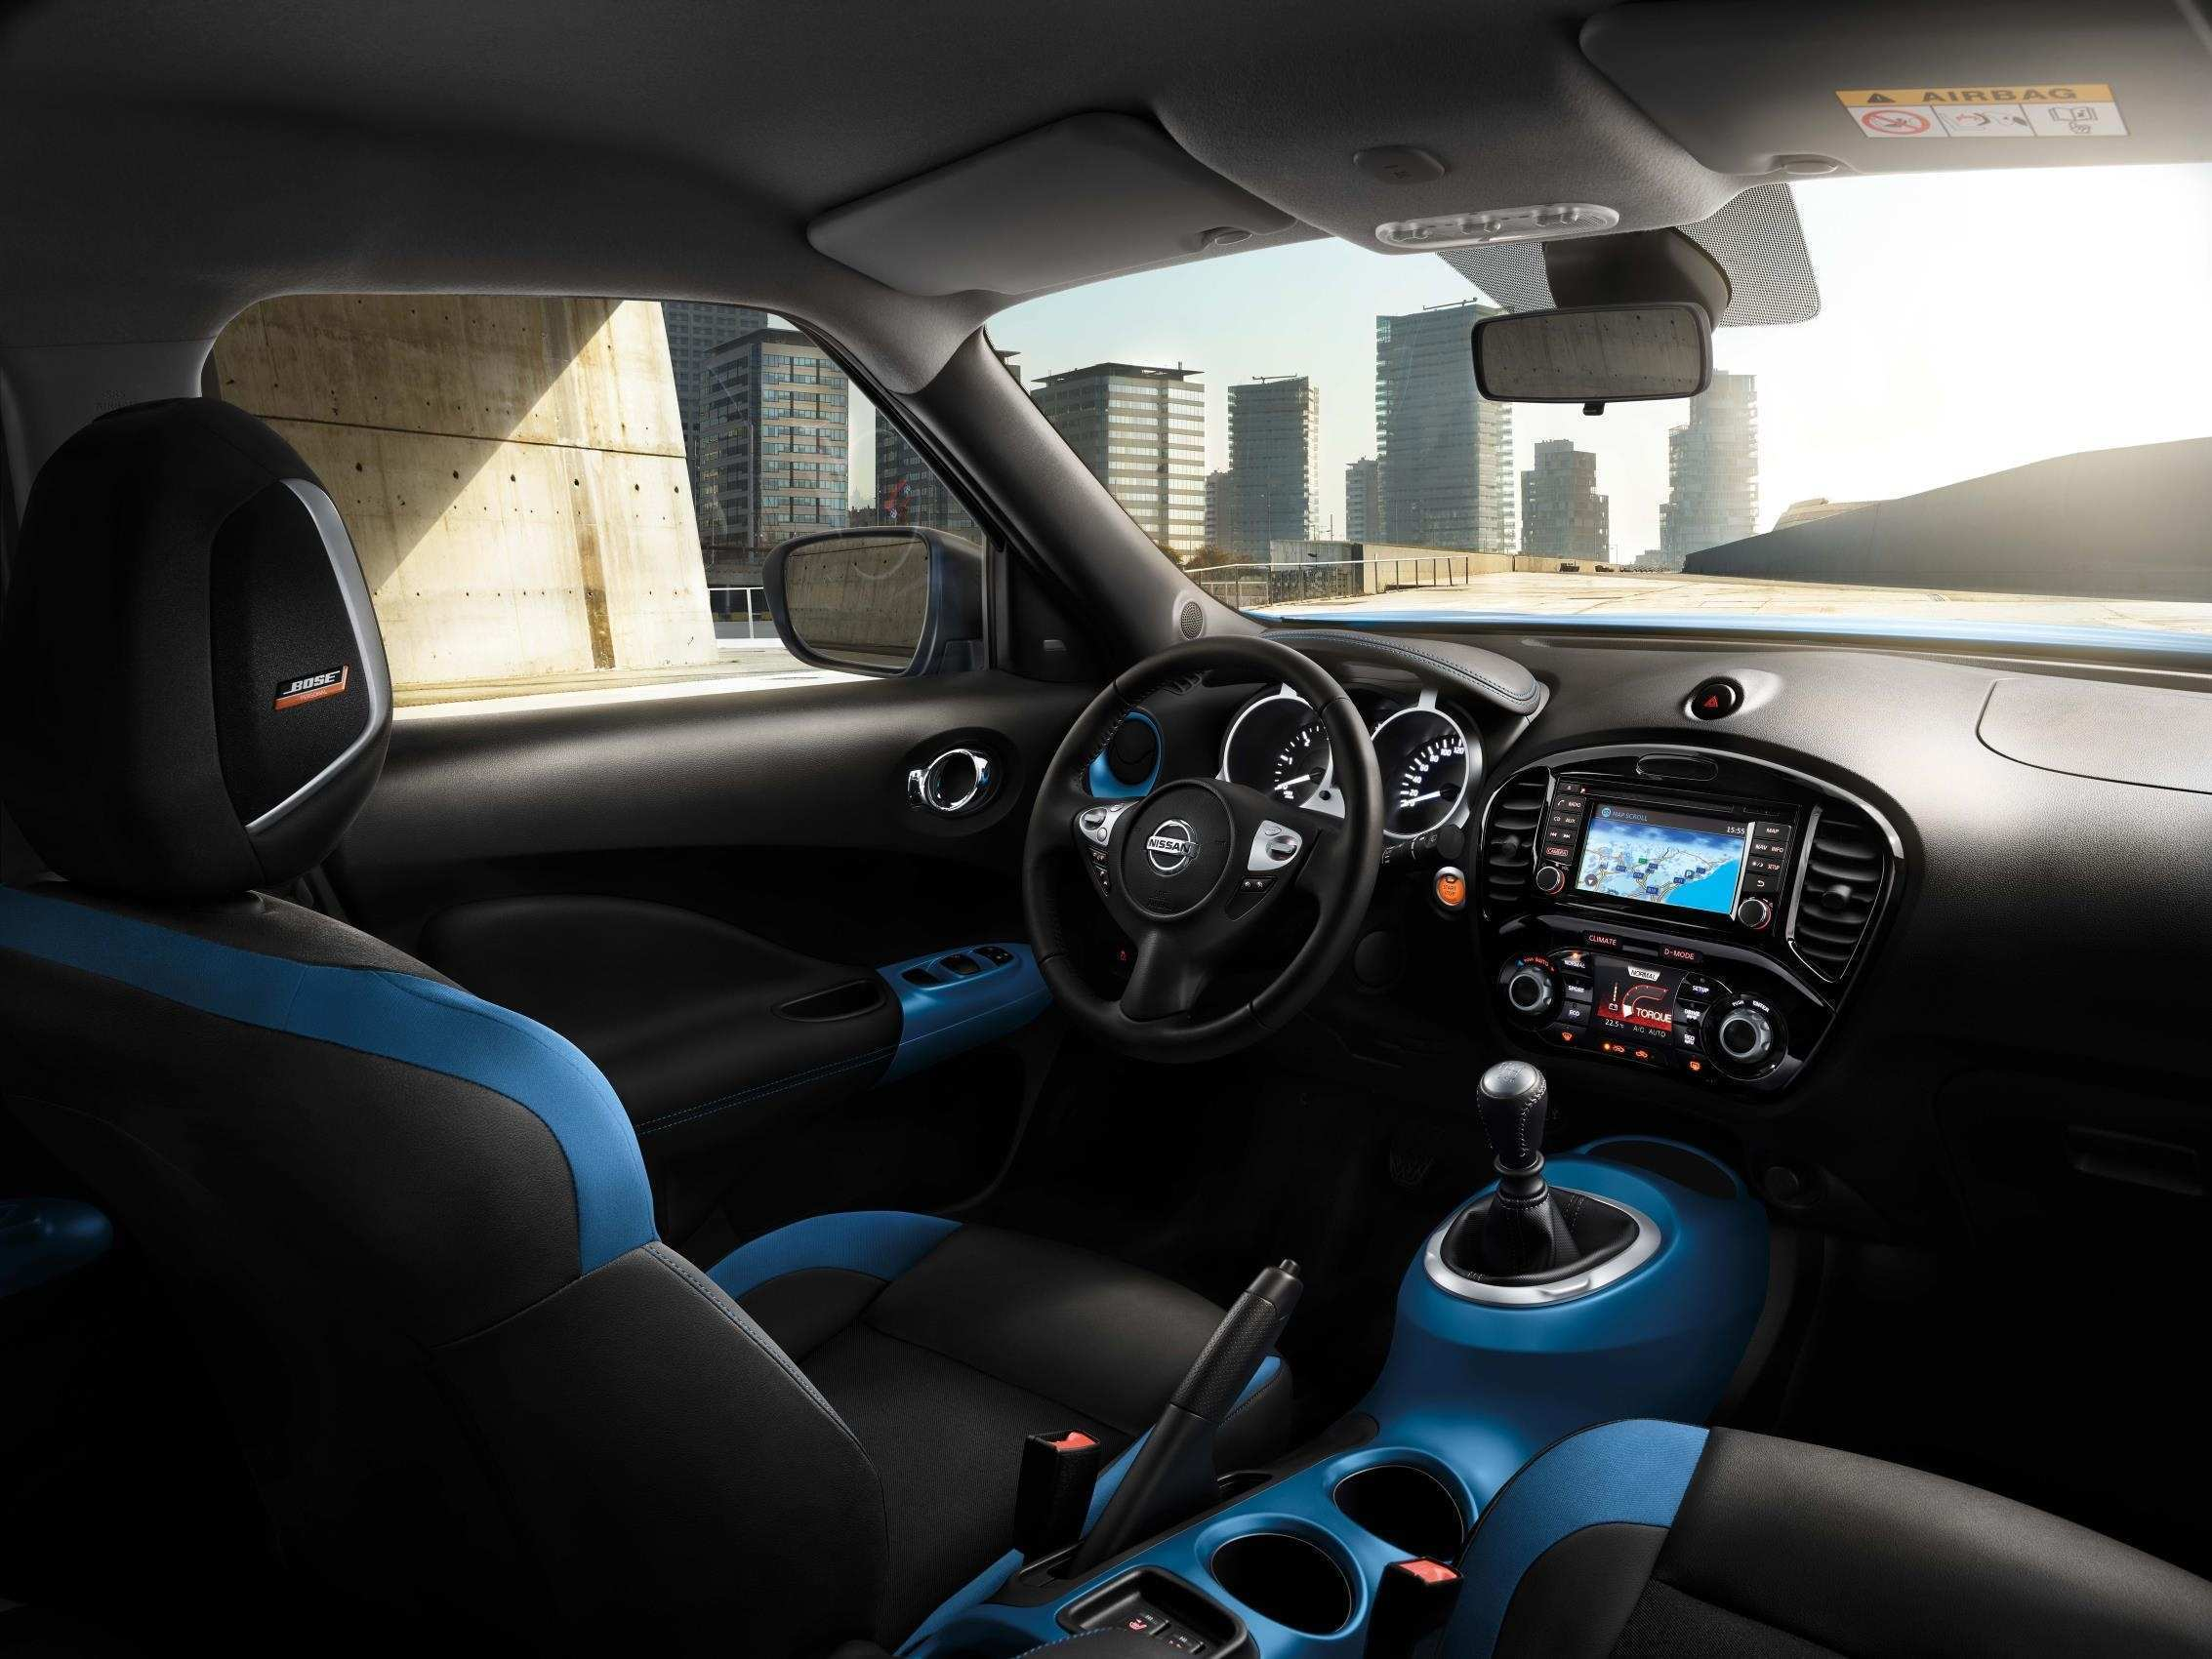 38 All New Nissan Juke 2019 Release Date Prices